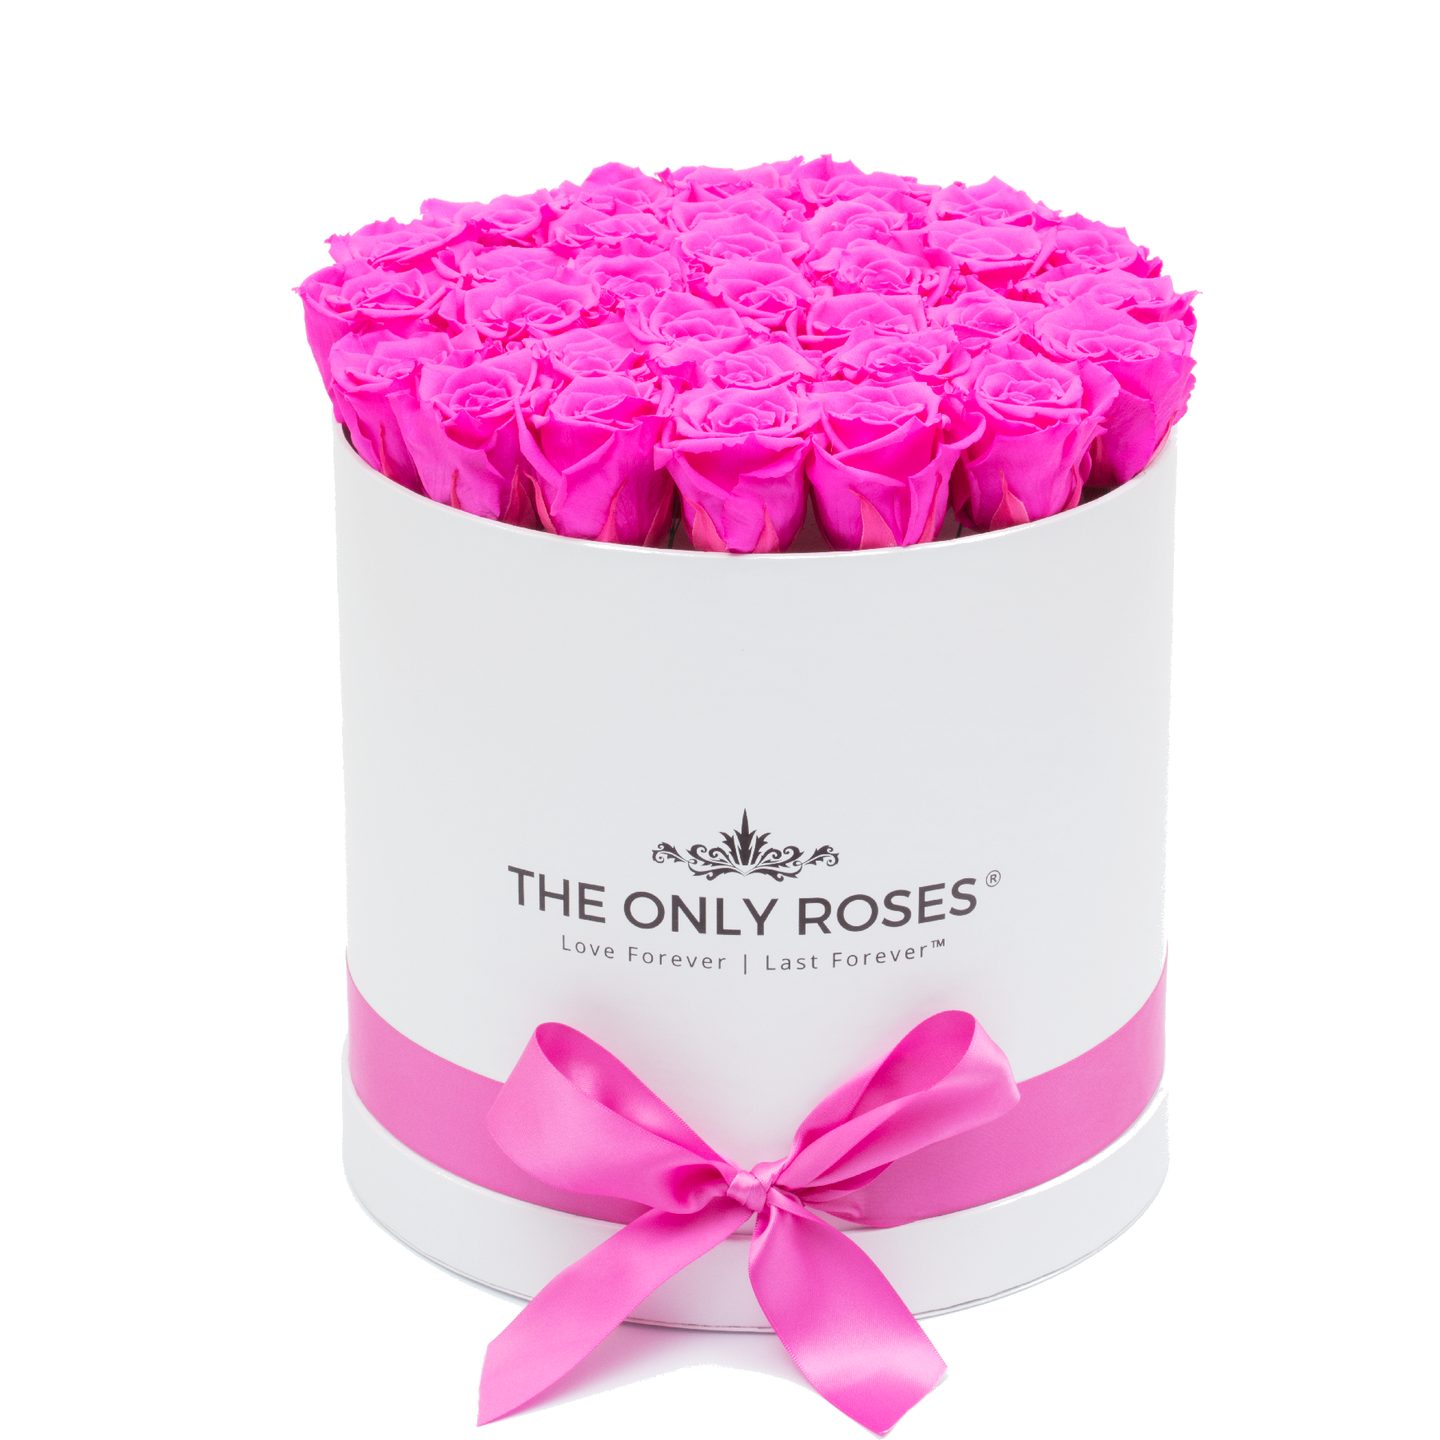 Hot Pink Preserved Roses | Medium Round White Huggy Rose Box - The Only Roses